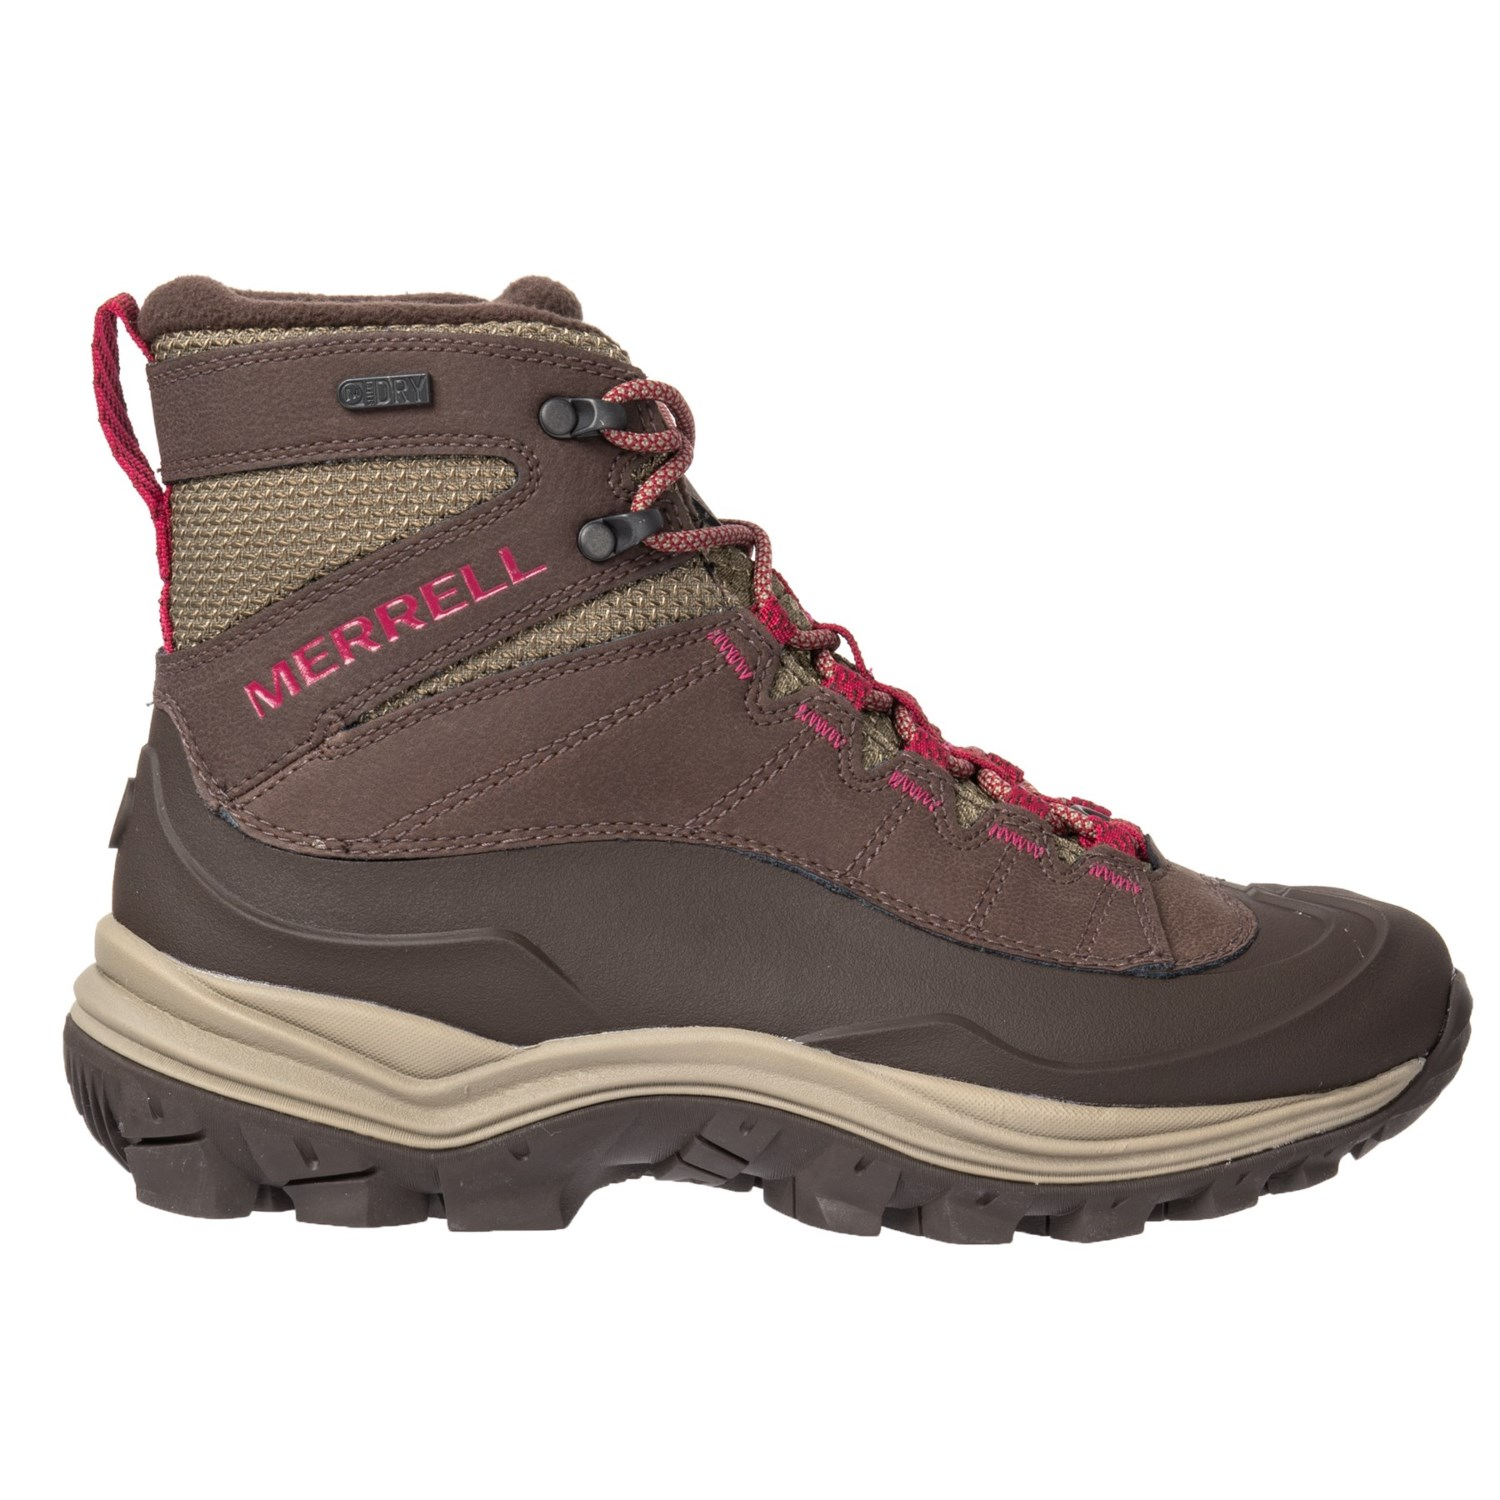 Merrell Thermo Chill Mid Shell Hiking Boots Waterproof (For Women)